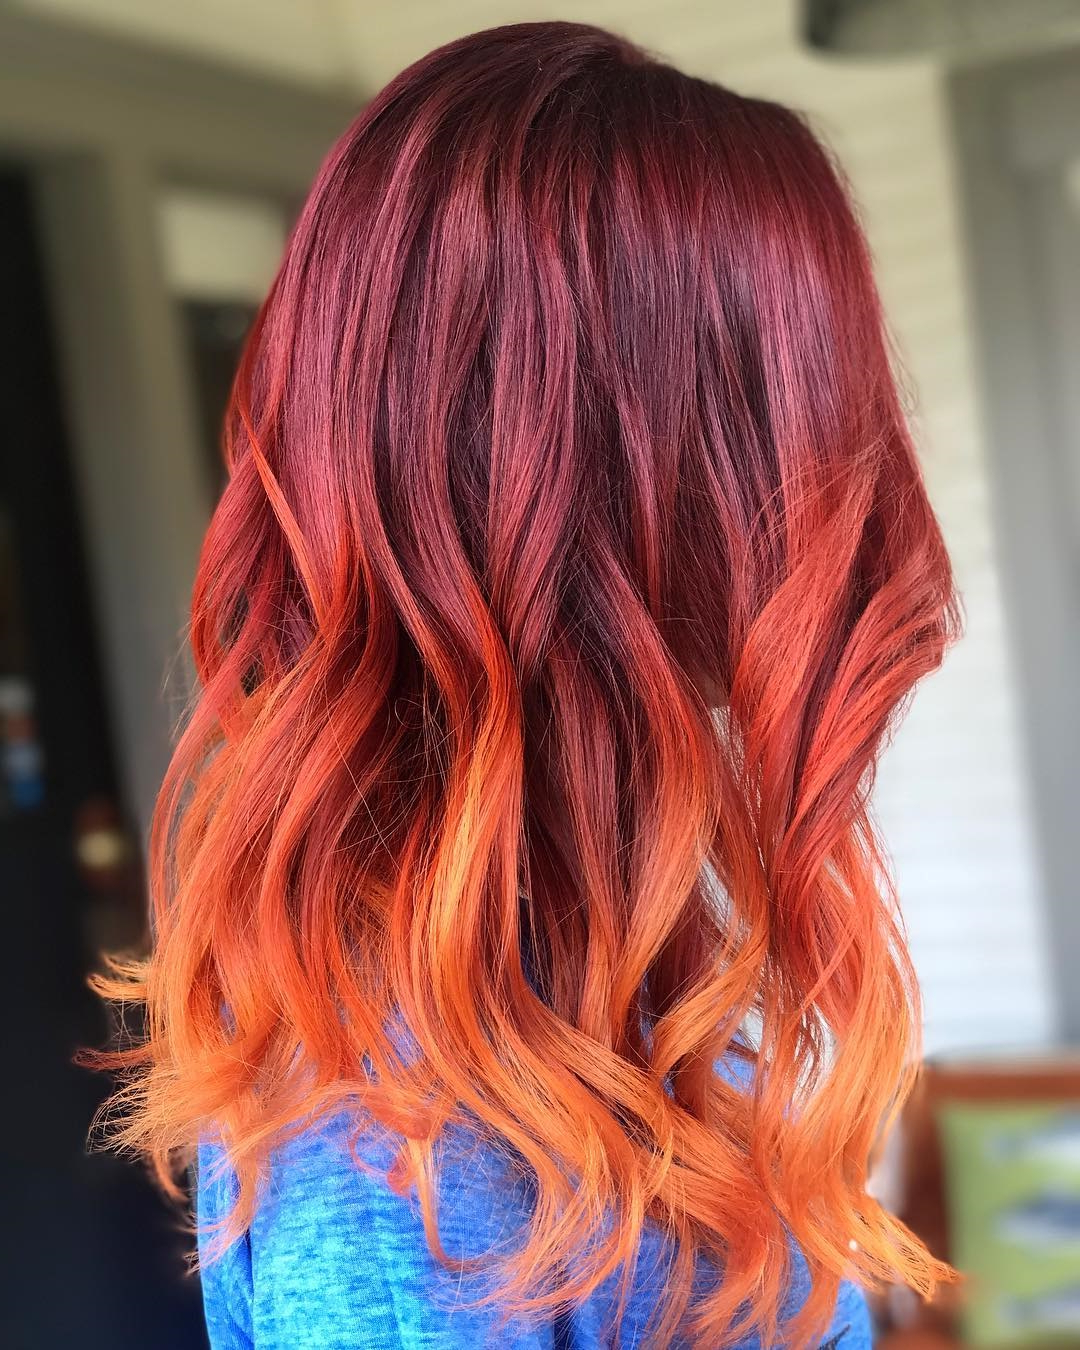 20 Radical Styling Ideas For Your Red Ombre Hair Regarding Fire Red Short Hairstyles (View 5 of 25)